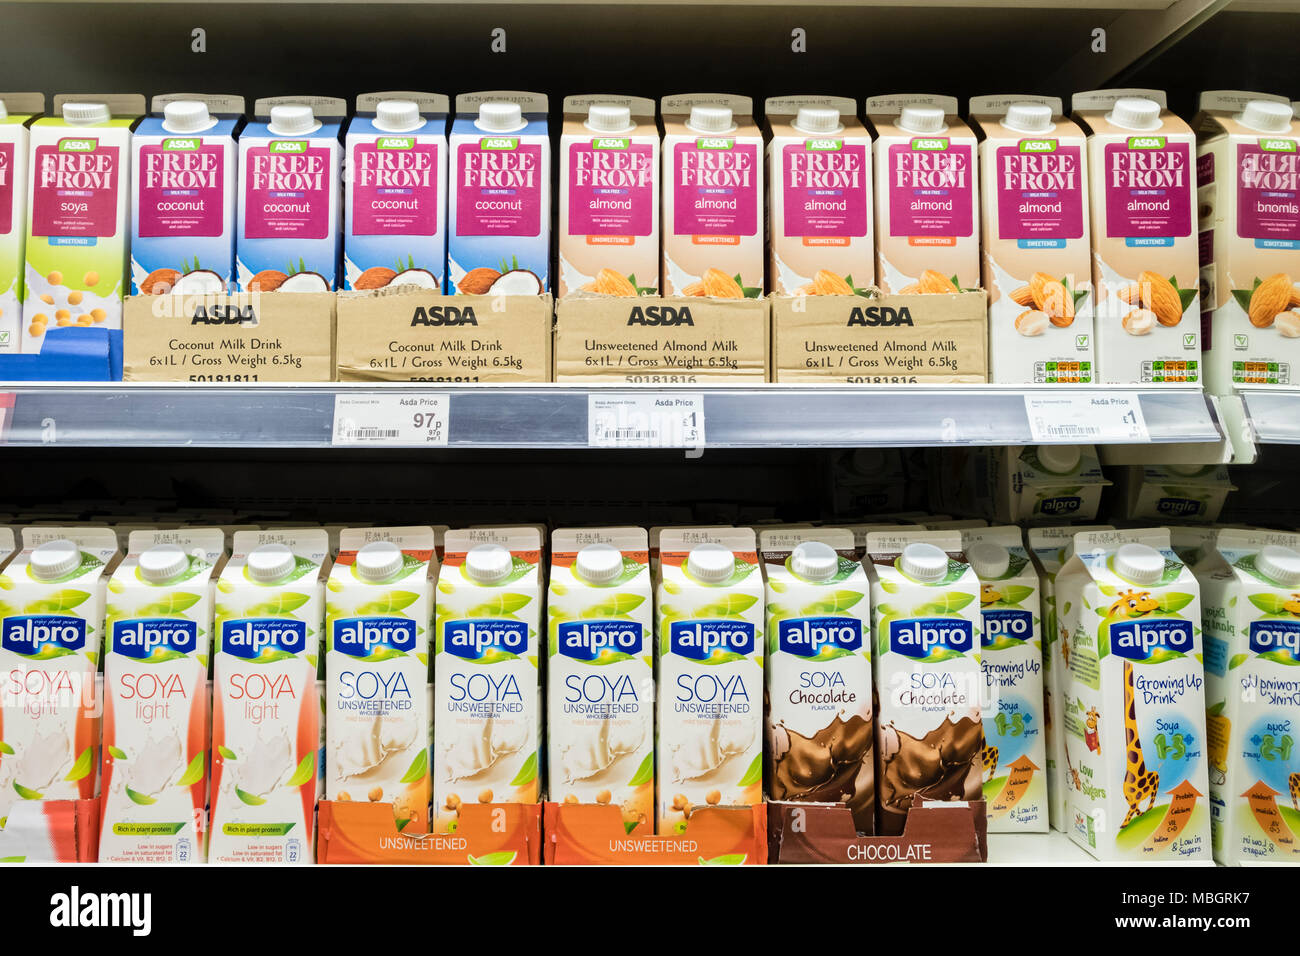 Alpro and Asda own brand soya milk and 'Free From' drinks on UK supermarket shelves at Asda - Stock Image